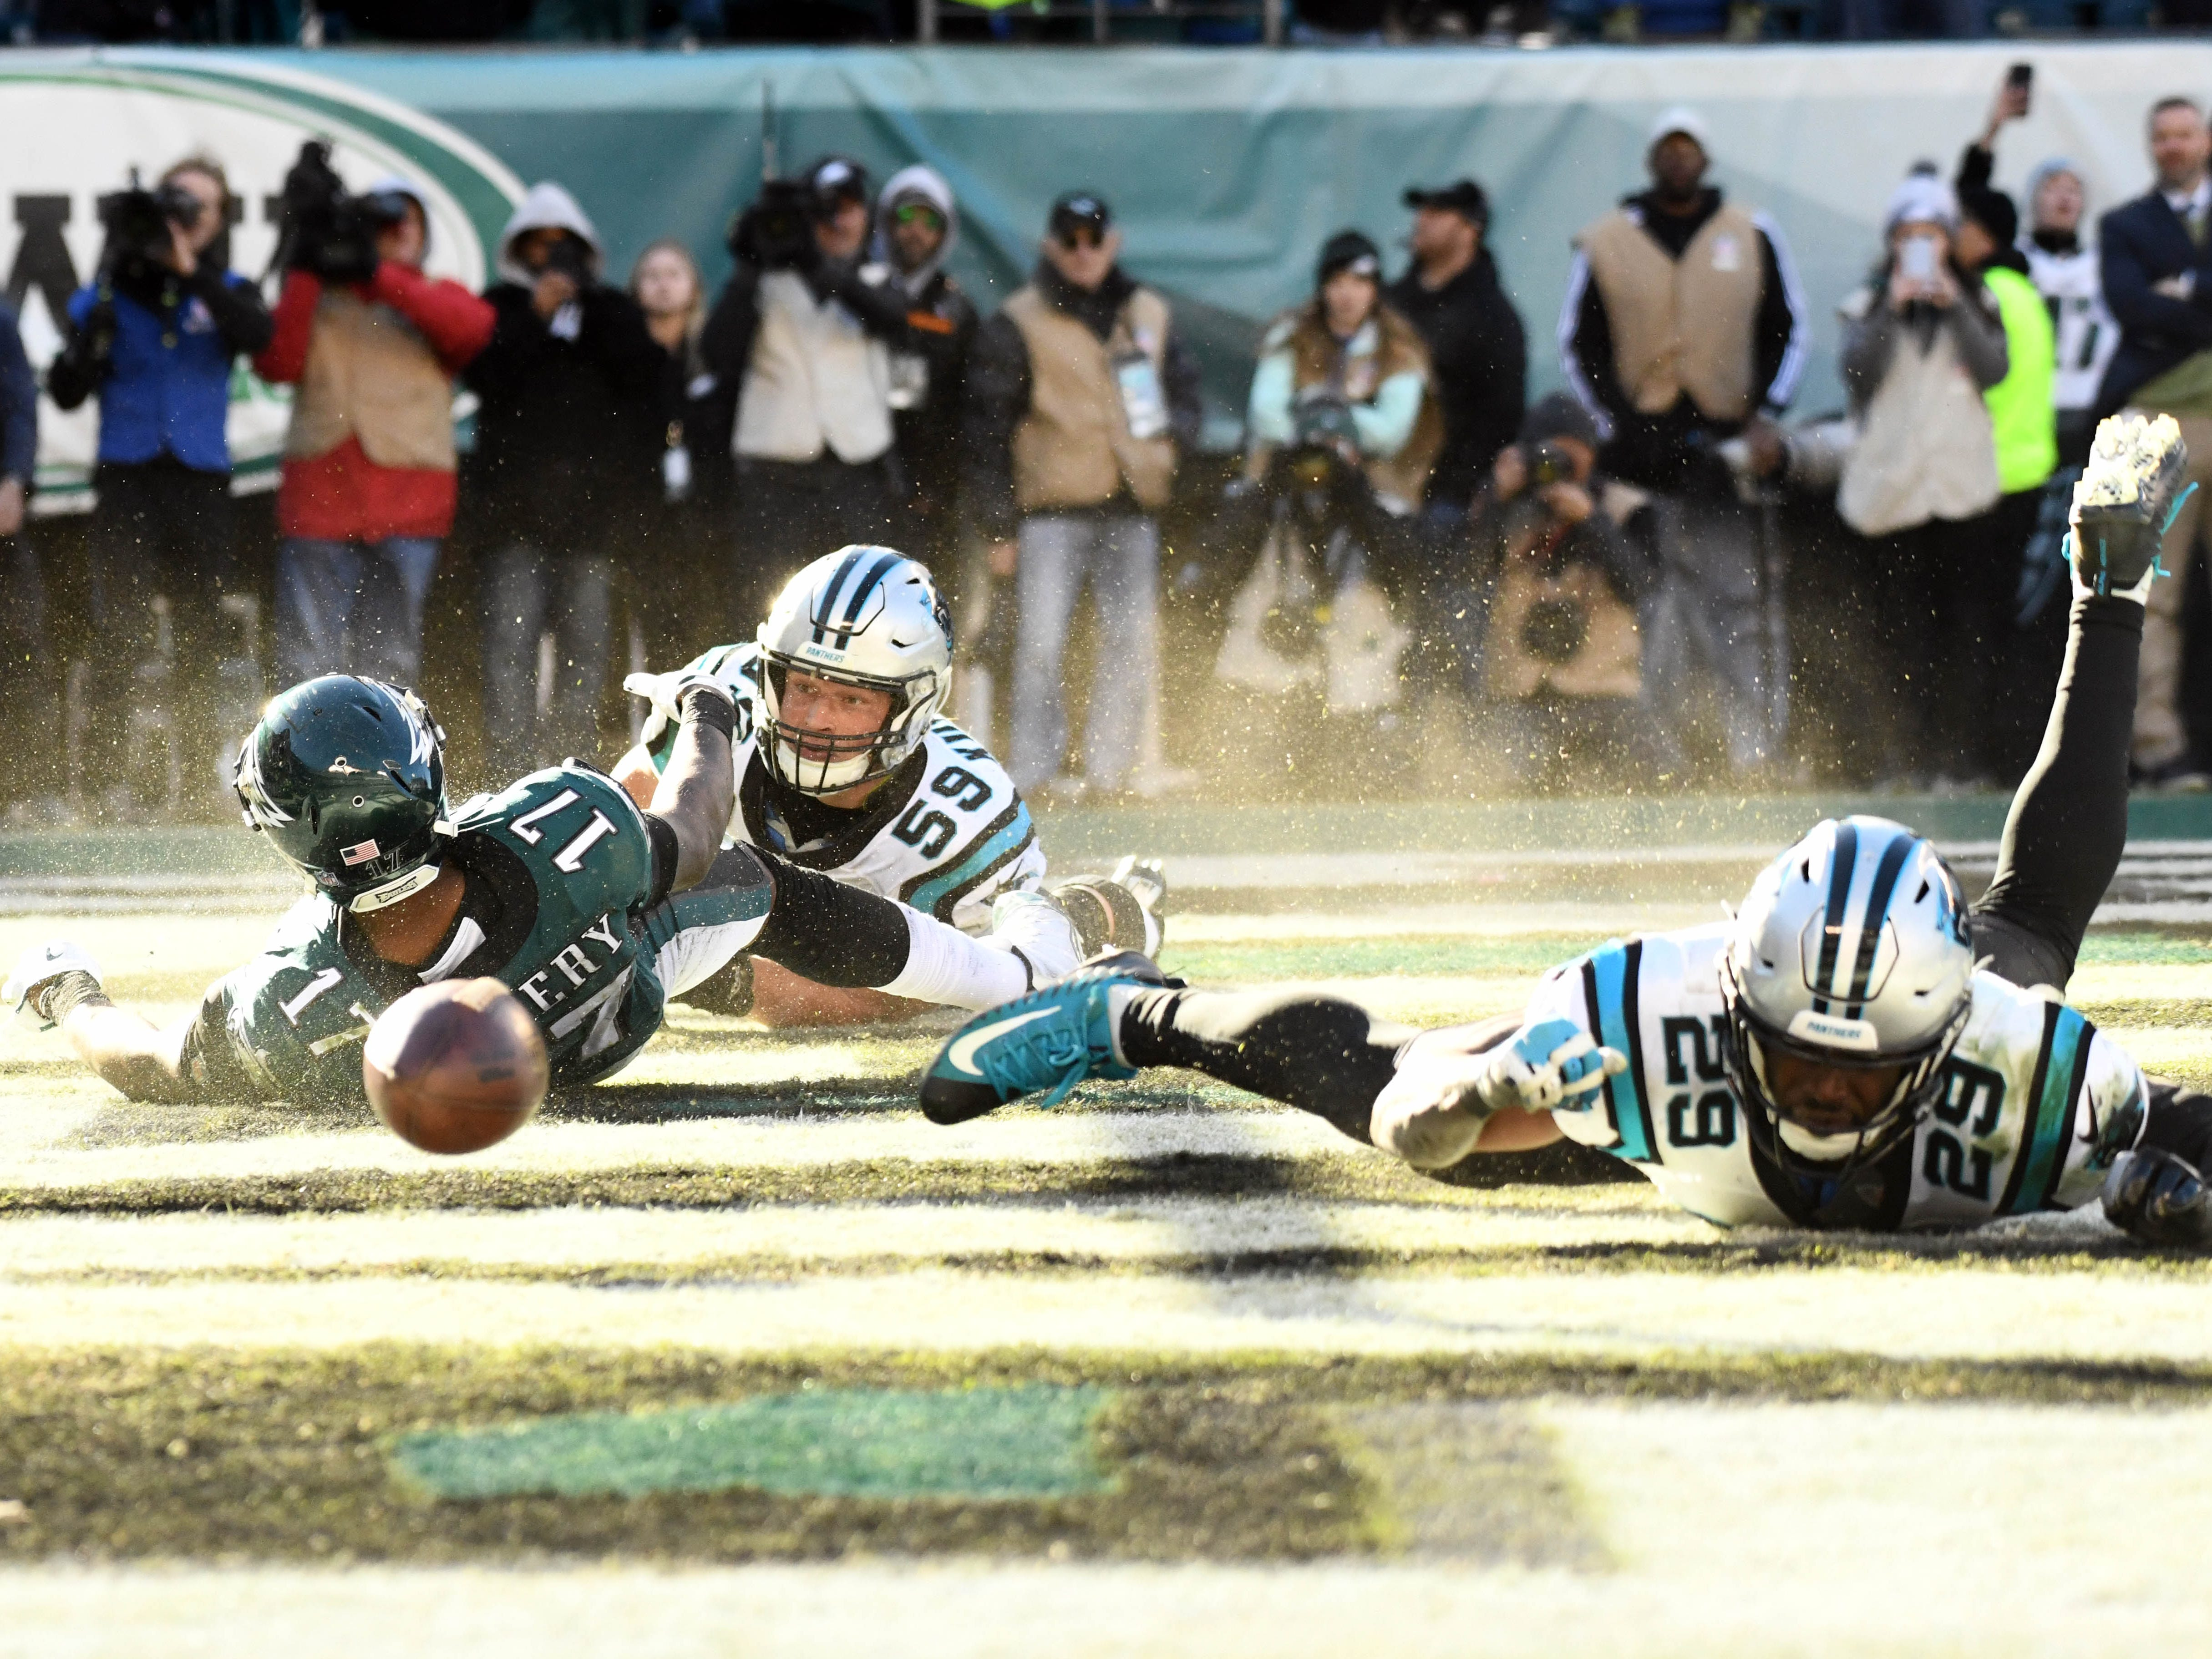 Week 7: Philadelphia Eagles wide receiver Alshon Jeffery (17) is unable to make the catch as Carolina Panthers linebacker Luke Kuechly (59) and safety Mike Adams (29) defend at Lincoln Financial Field. The Panthers won the game, 21-17.